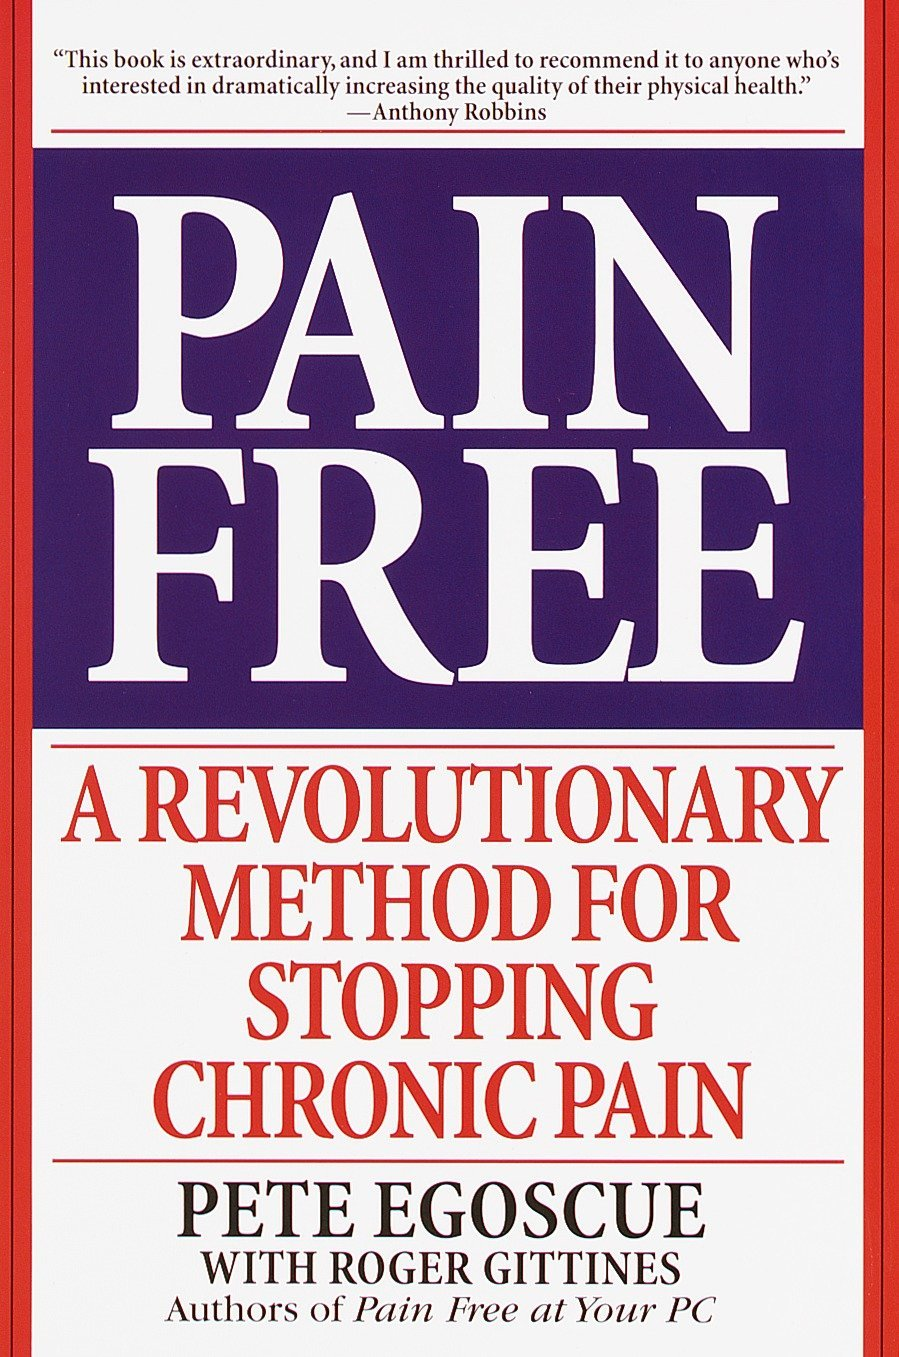 Buy Pain Free: A Revolutionary Method for Stopping Chronic Pain Book Online  at Low Prices in India | Pain Free: A Revolutionary Method for Stopping  Chronic ...